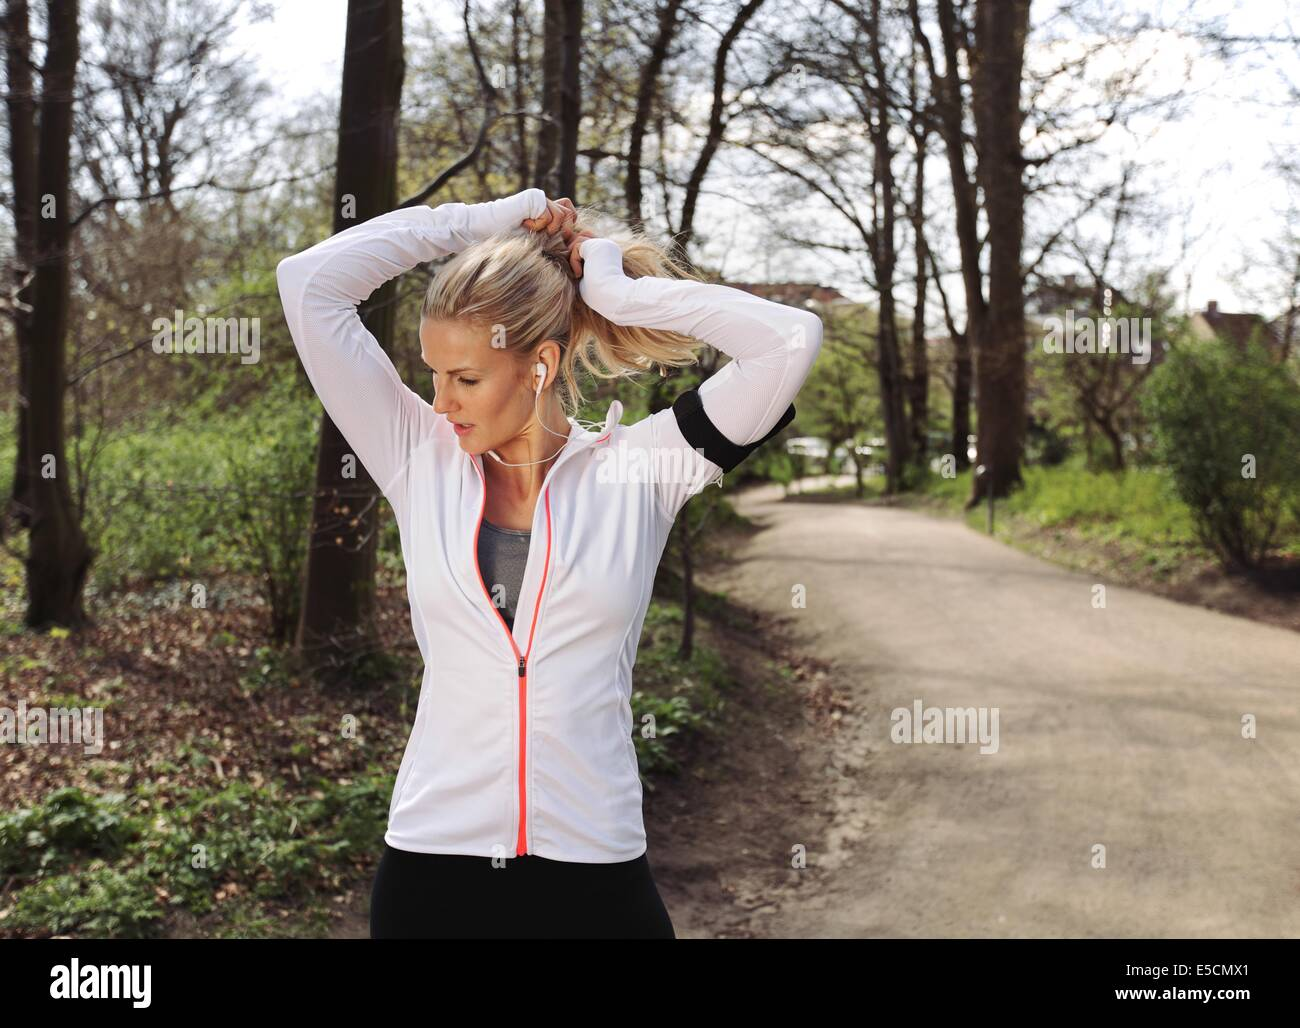 Fit female athlete tying hair before her run. Pretty young woman preparing for her run in forest. - Stock Image